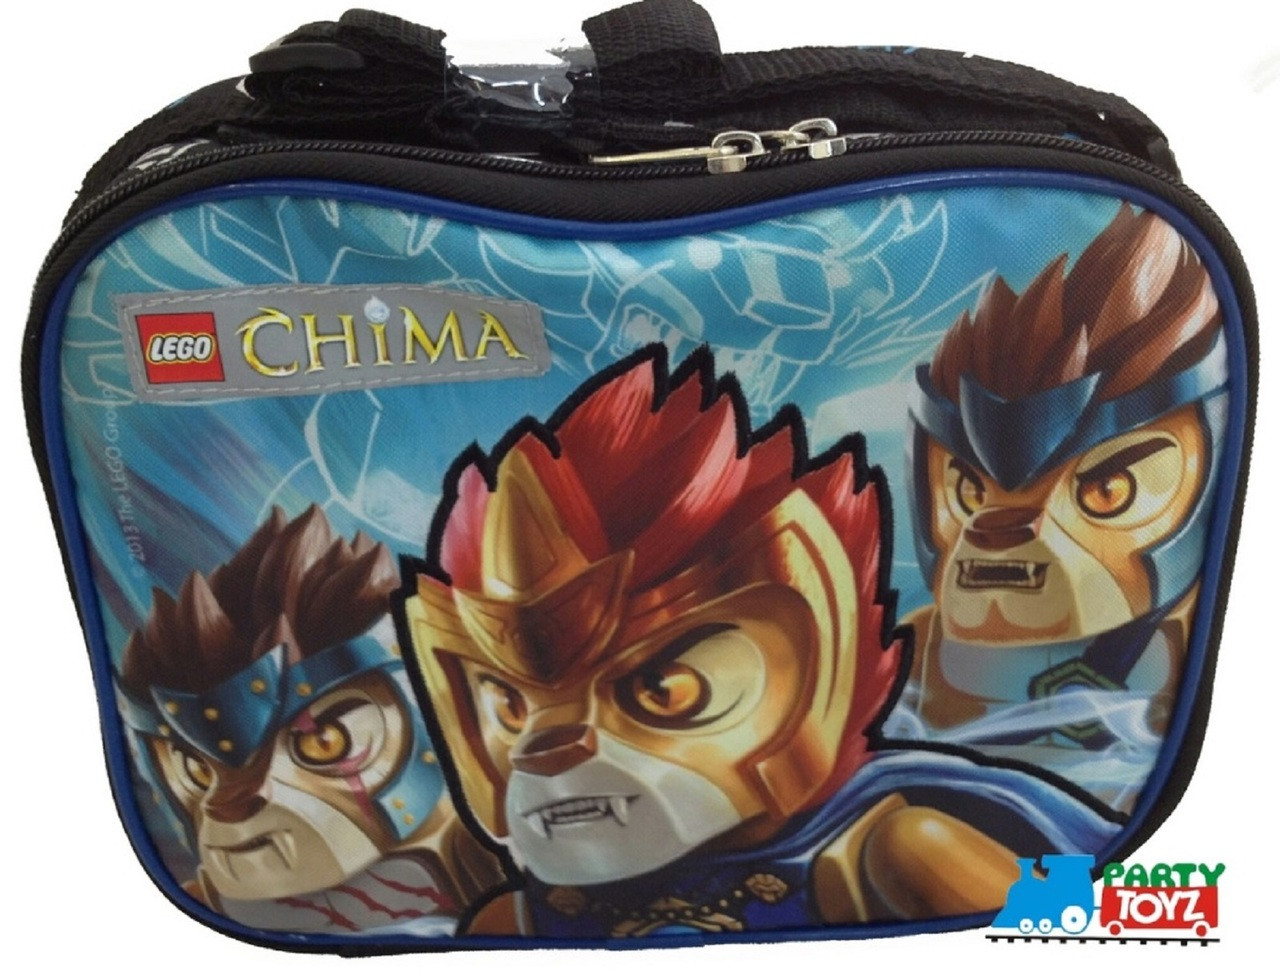 LEGO Chima Double Zipper Cloth Insulated Fabric Lunch Box Container - Black